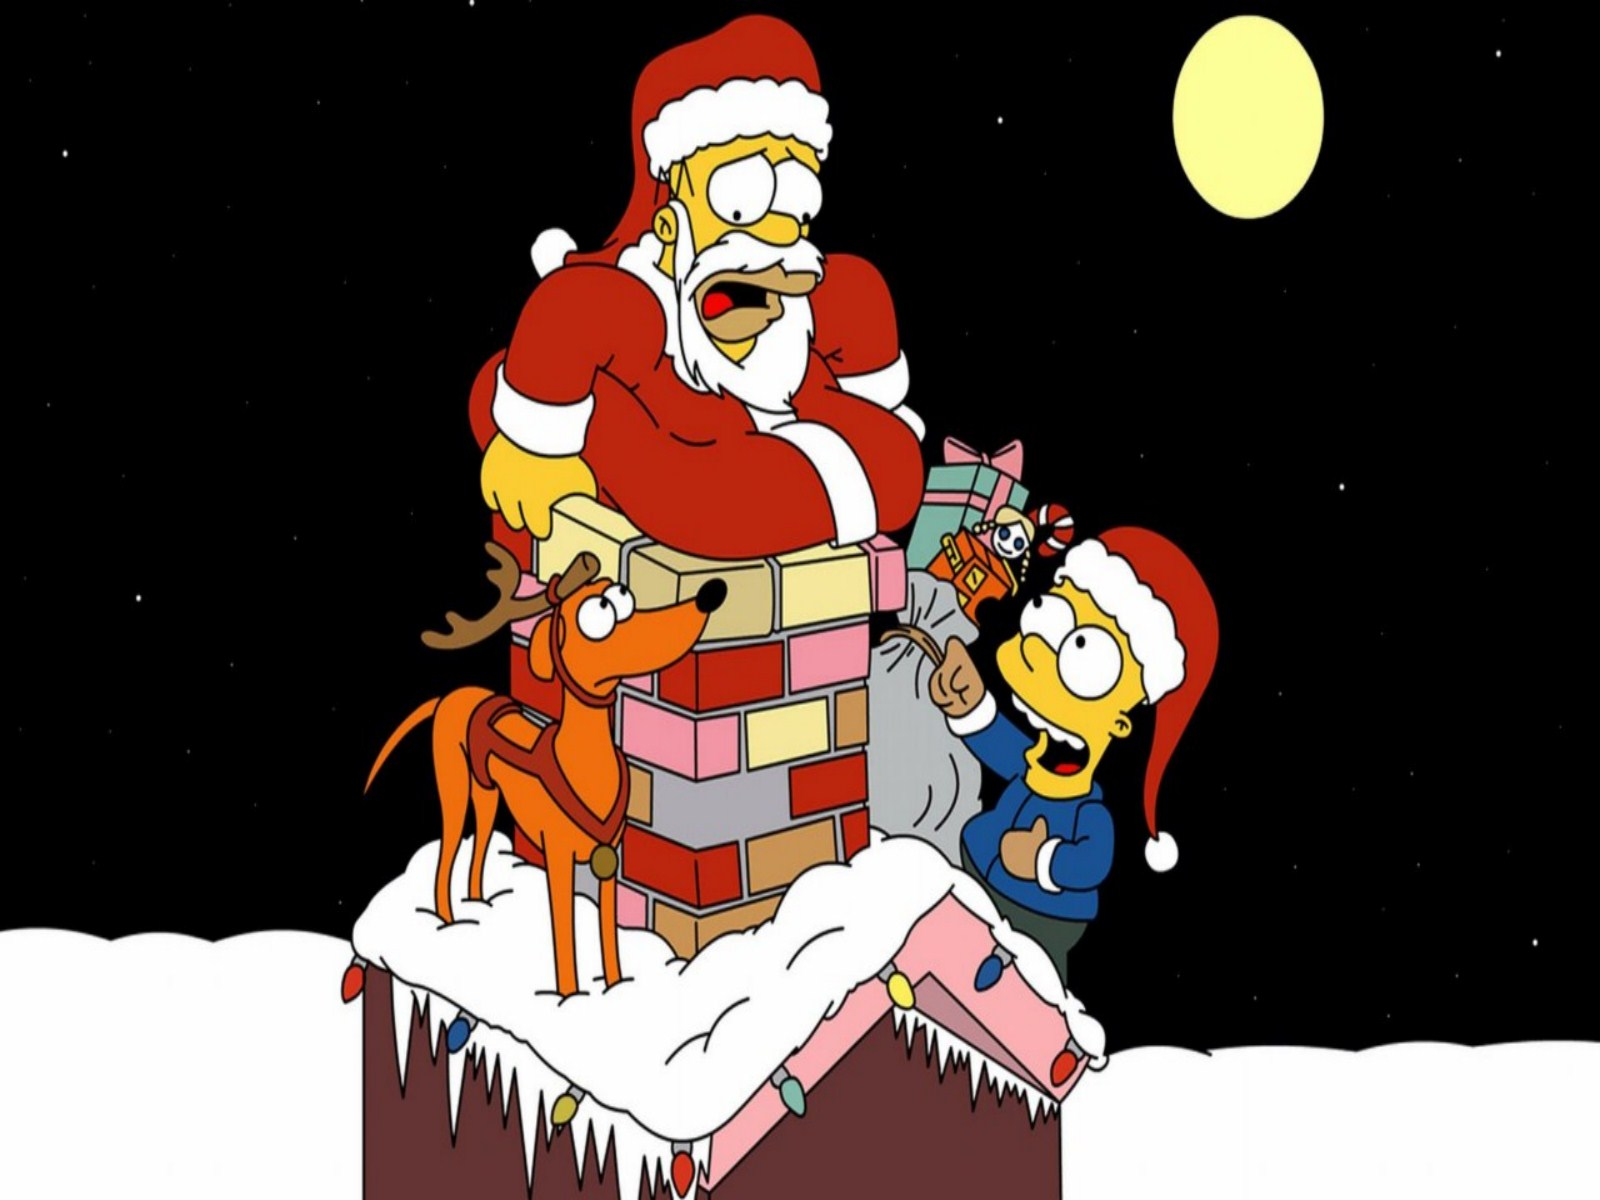 Simpsons Christmas Background Wallpaper   1600x1200   177891 1600x1200